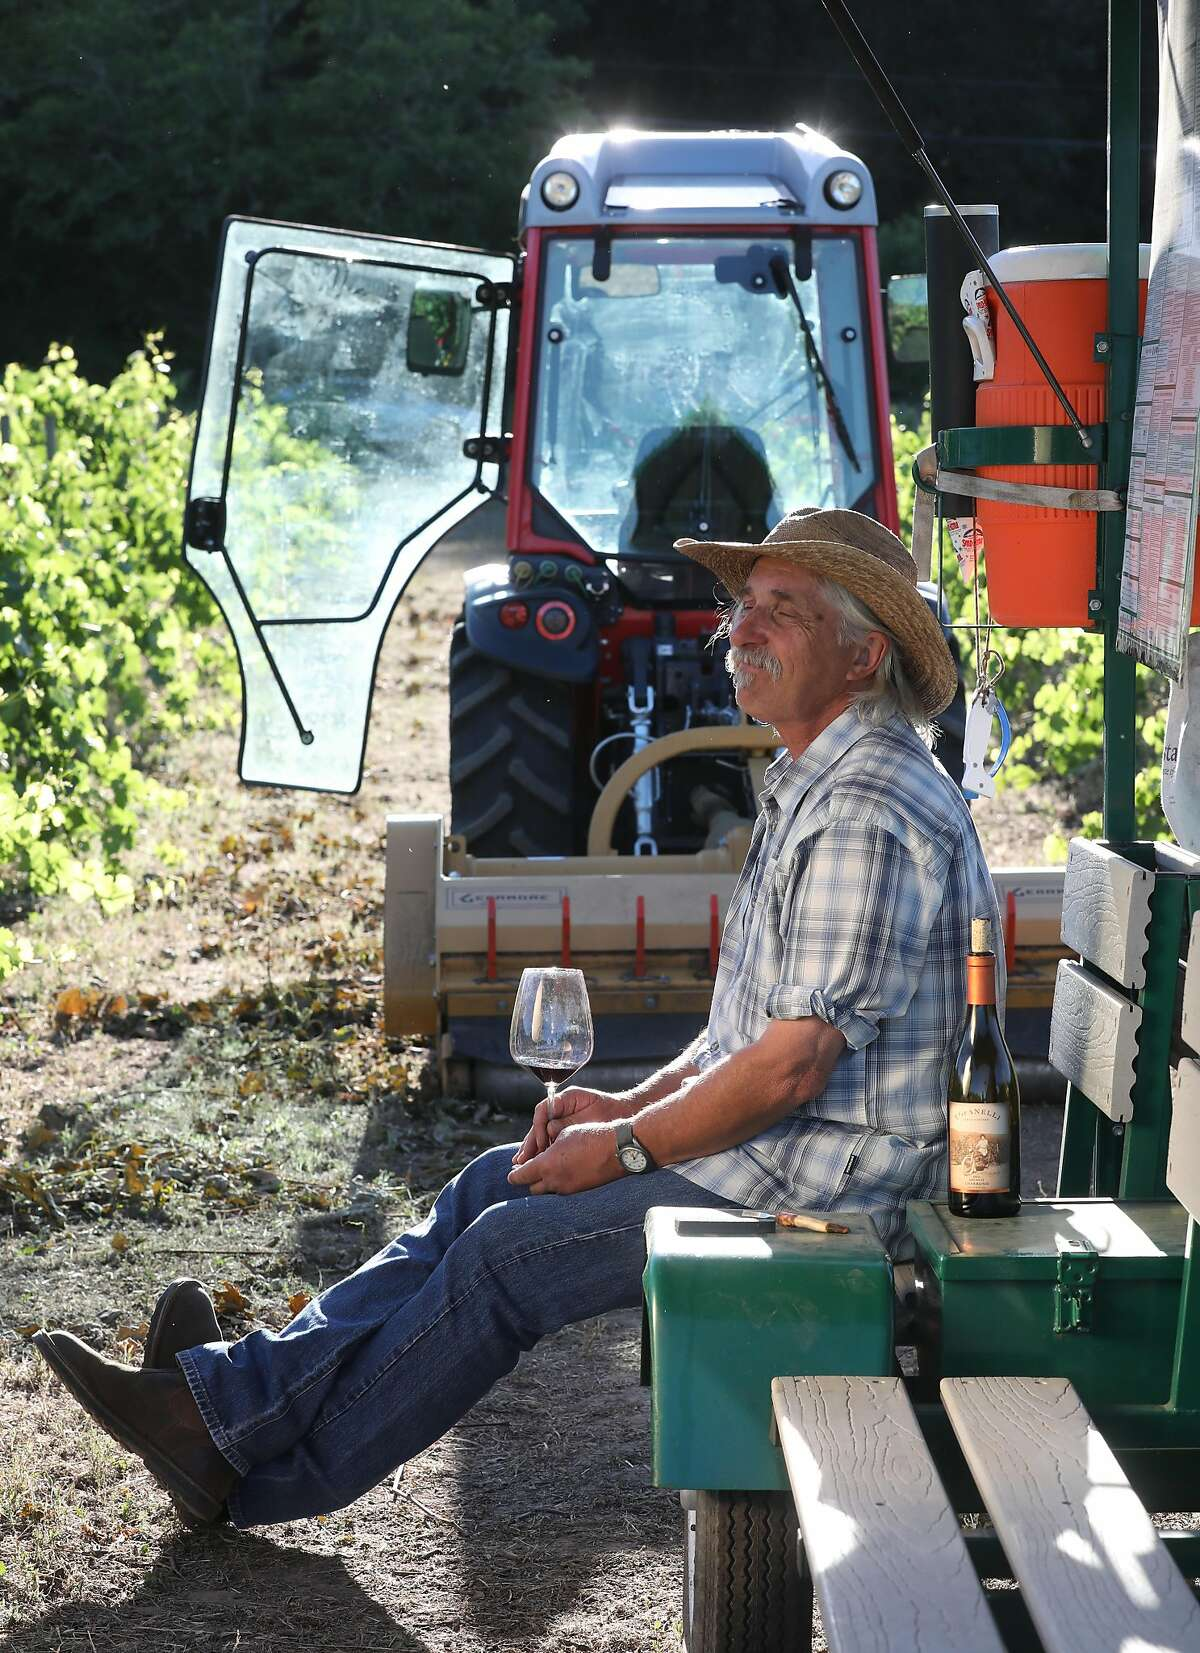 Vincent Toffanelli in his carbono vineyard at the end of the day on Thursday, June 6, 2019 in Calistoga, Calif.